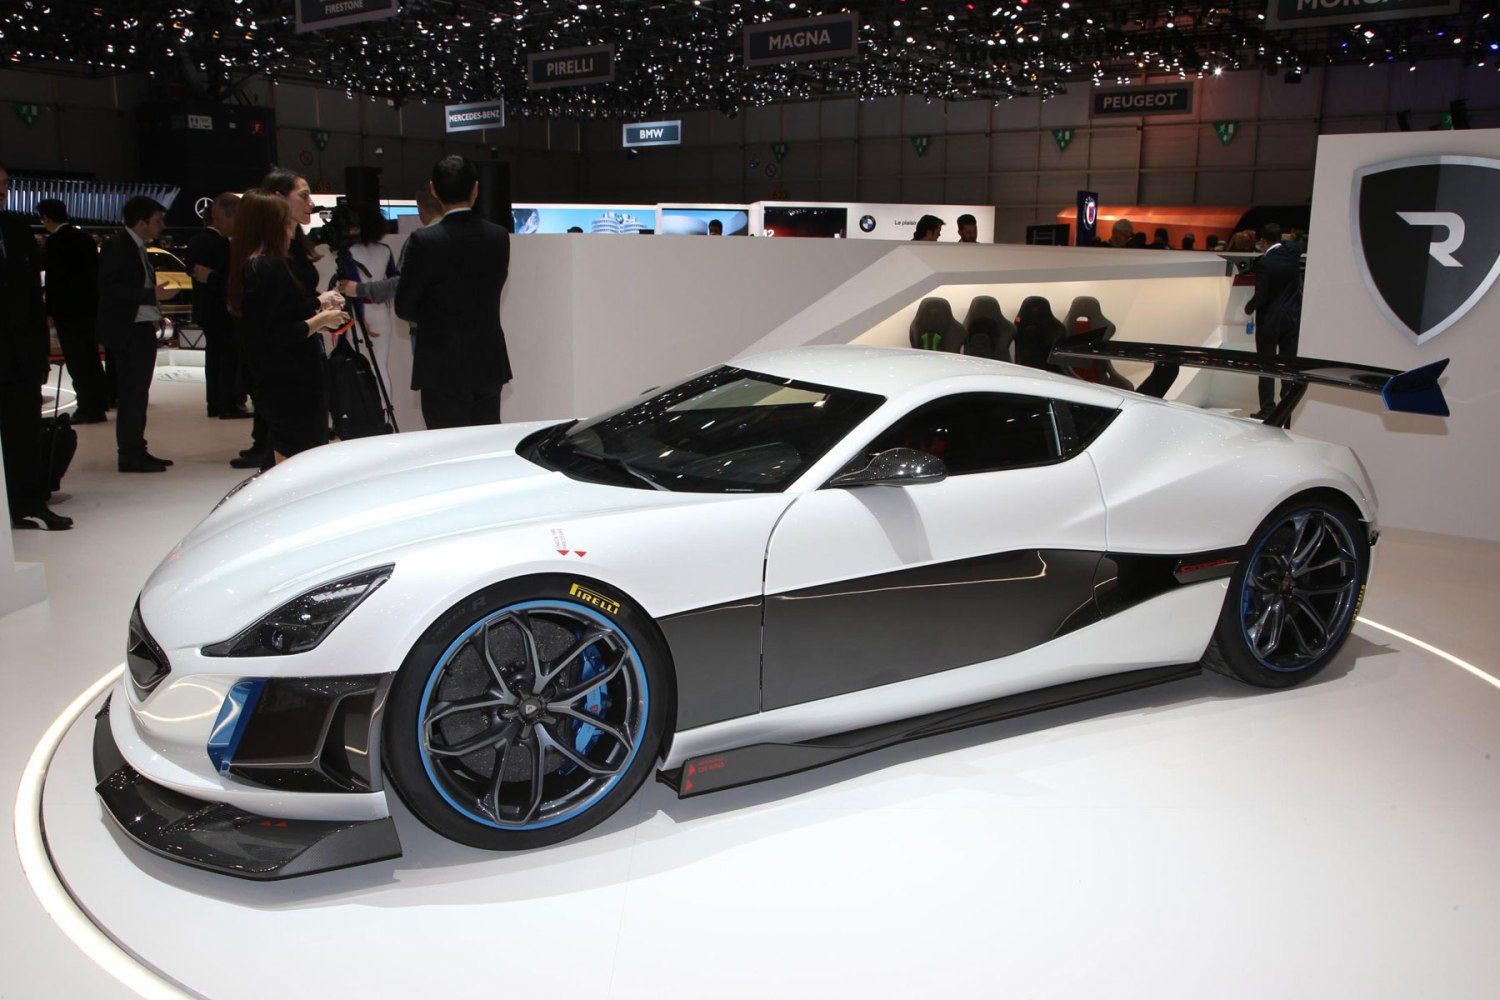 Rimac Concept One – 2.5 seconds